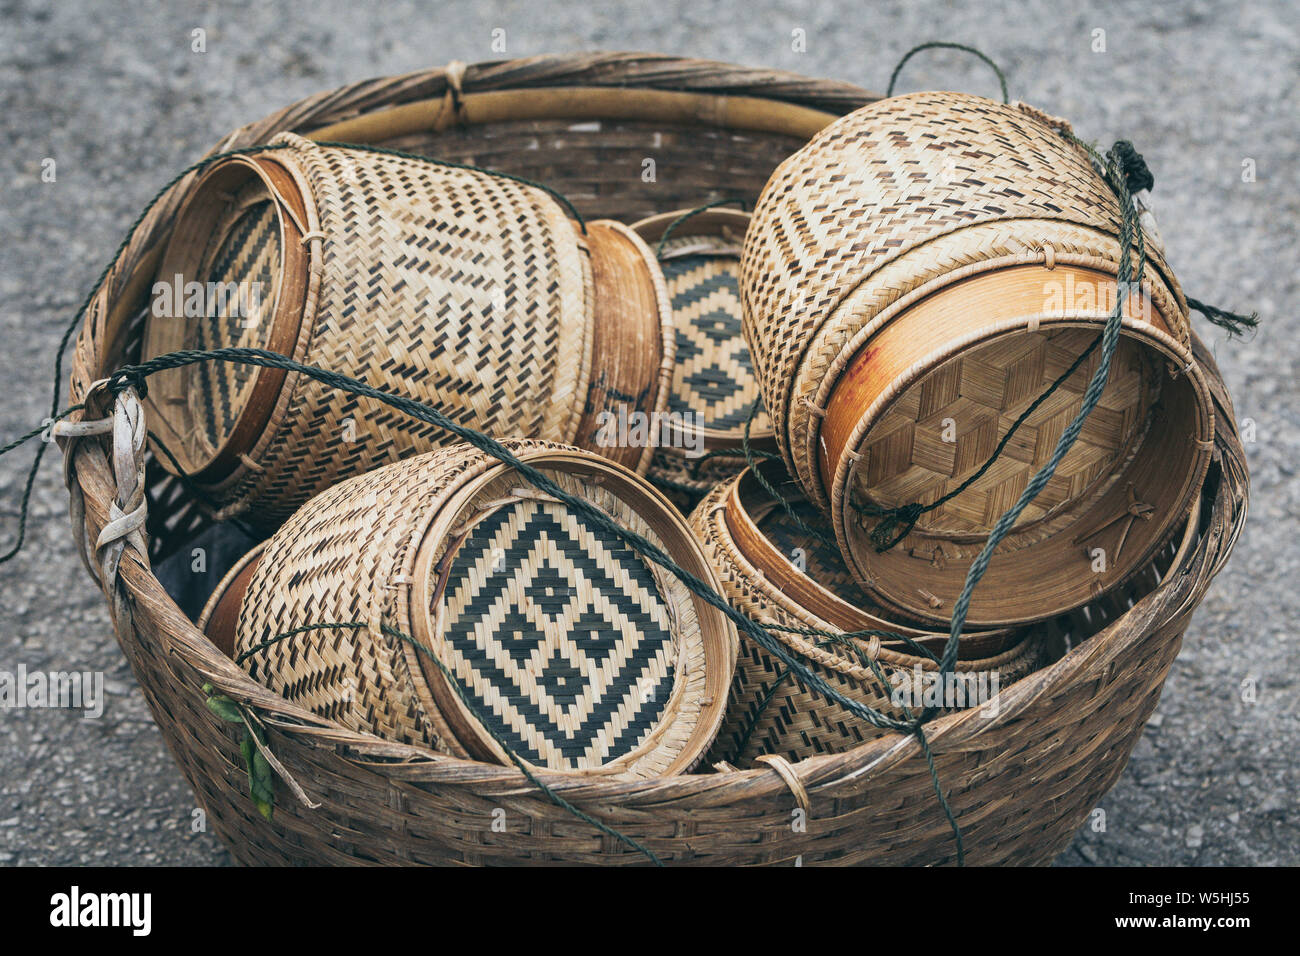 Traditional Laotian decorated rice baskets used for sacred Buddhist alms giving ceremony in Luang Prabang city, Laos. Stock Photo